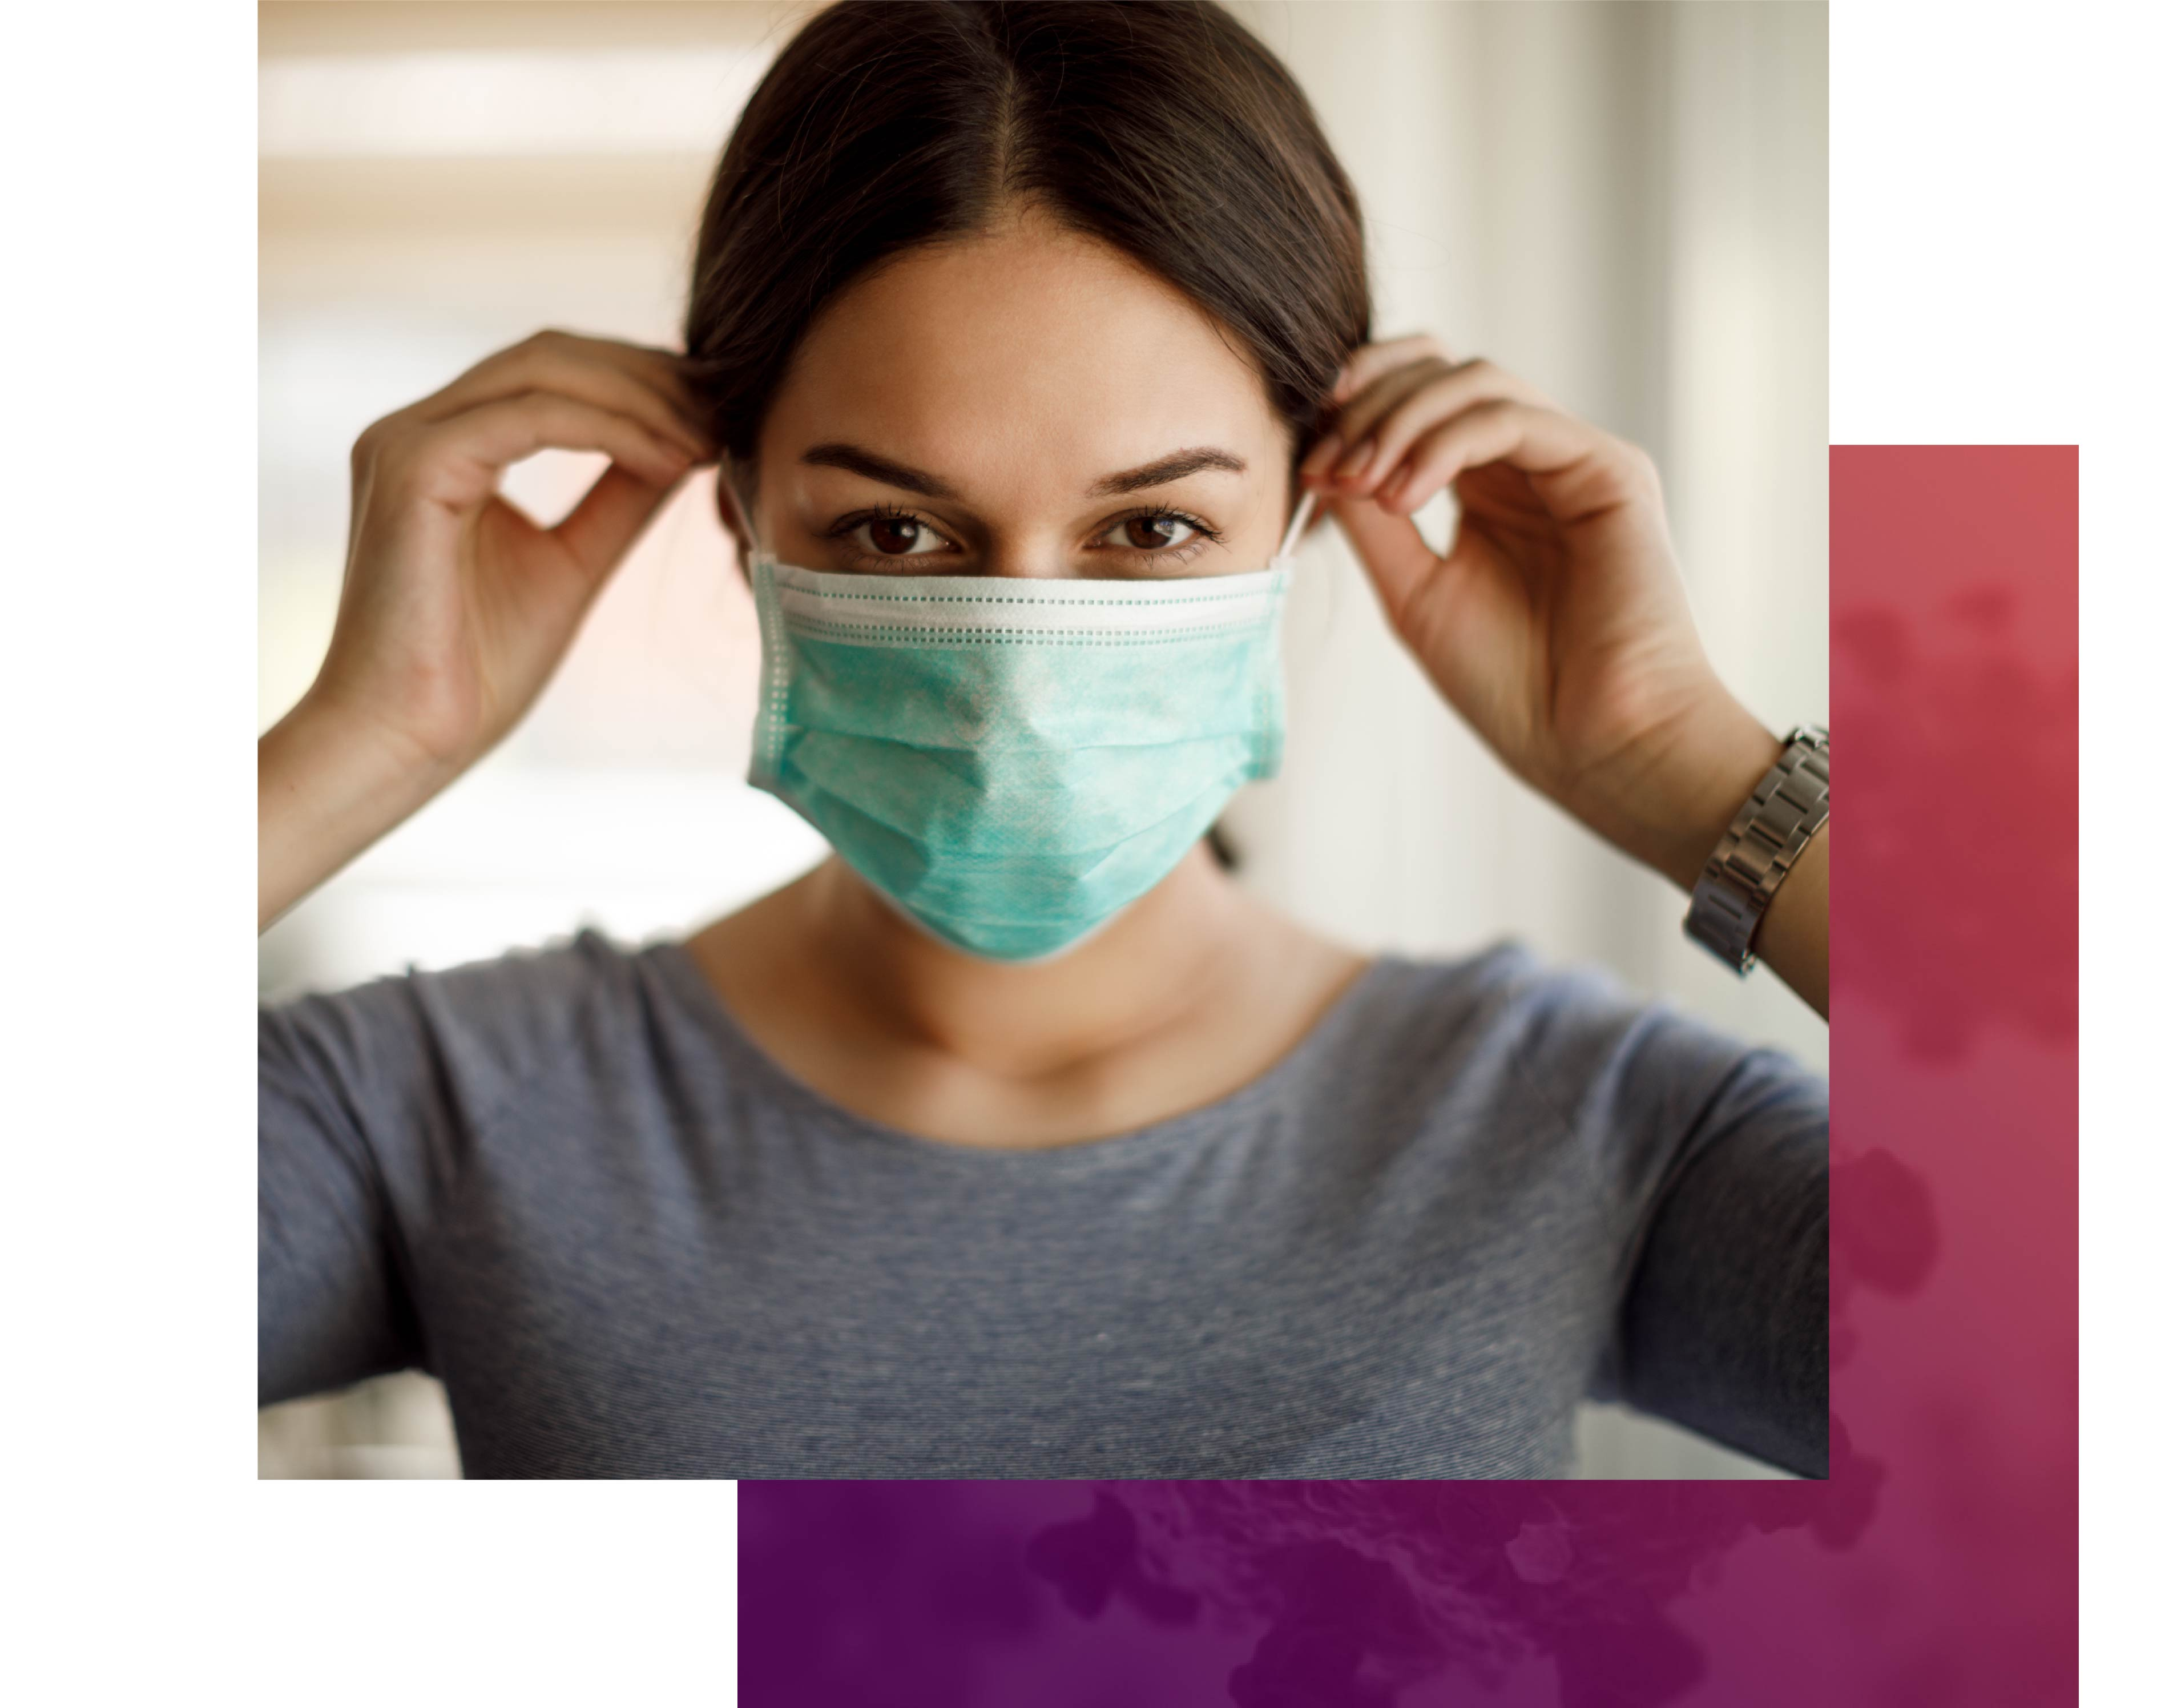 Woman putting on her mask to protect from COVID-19